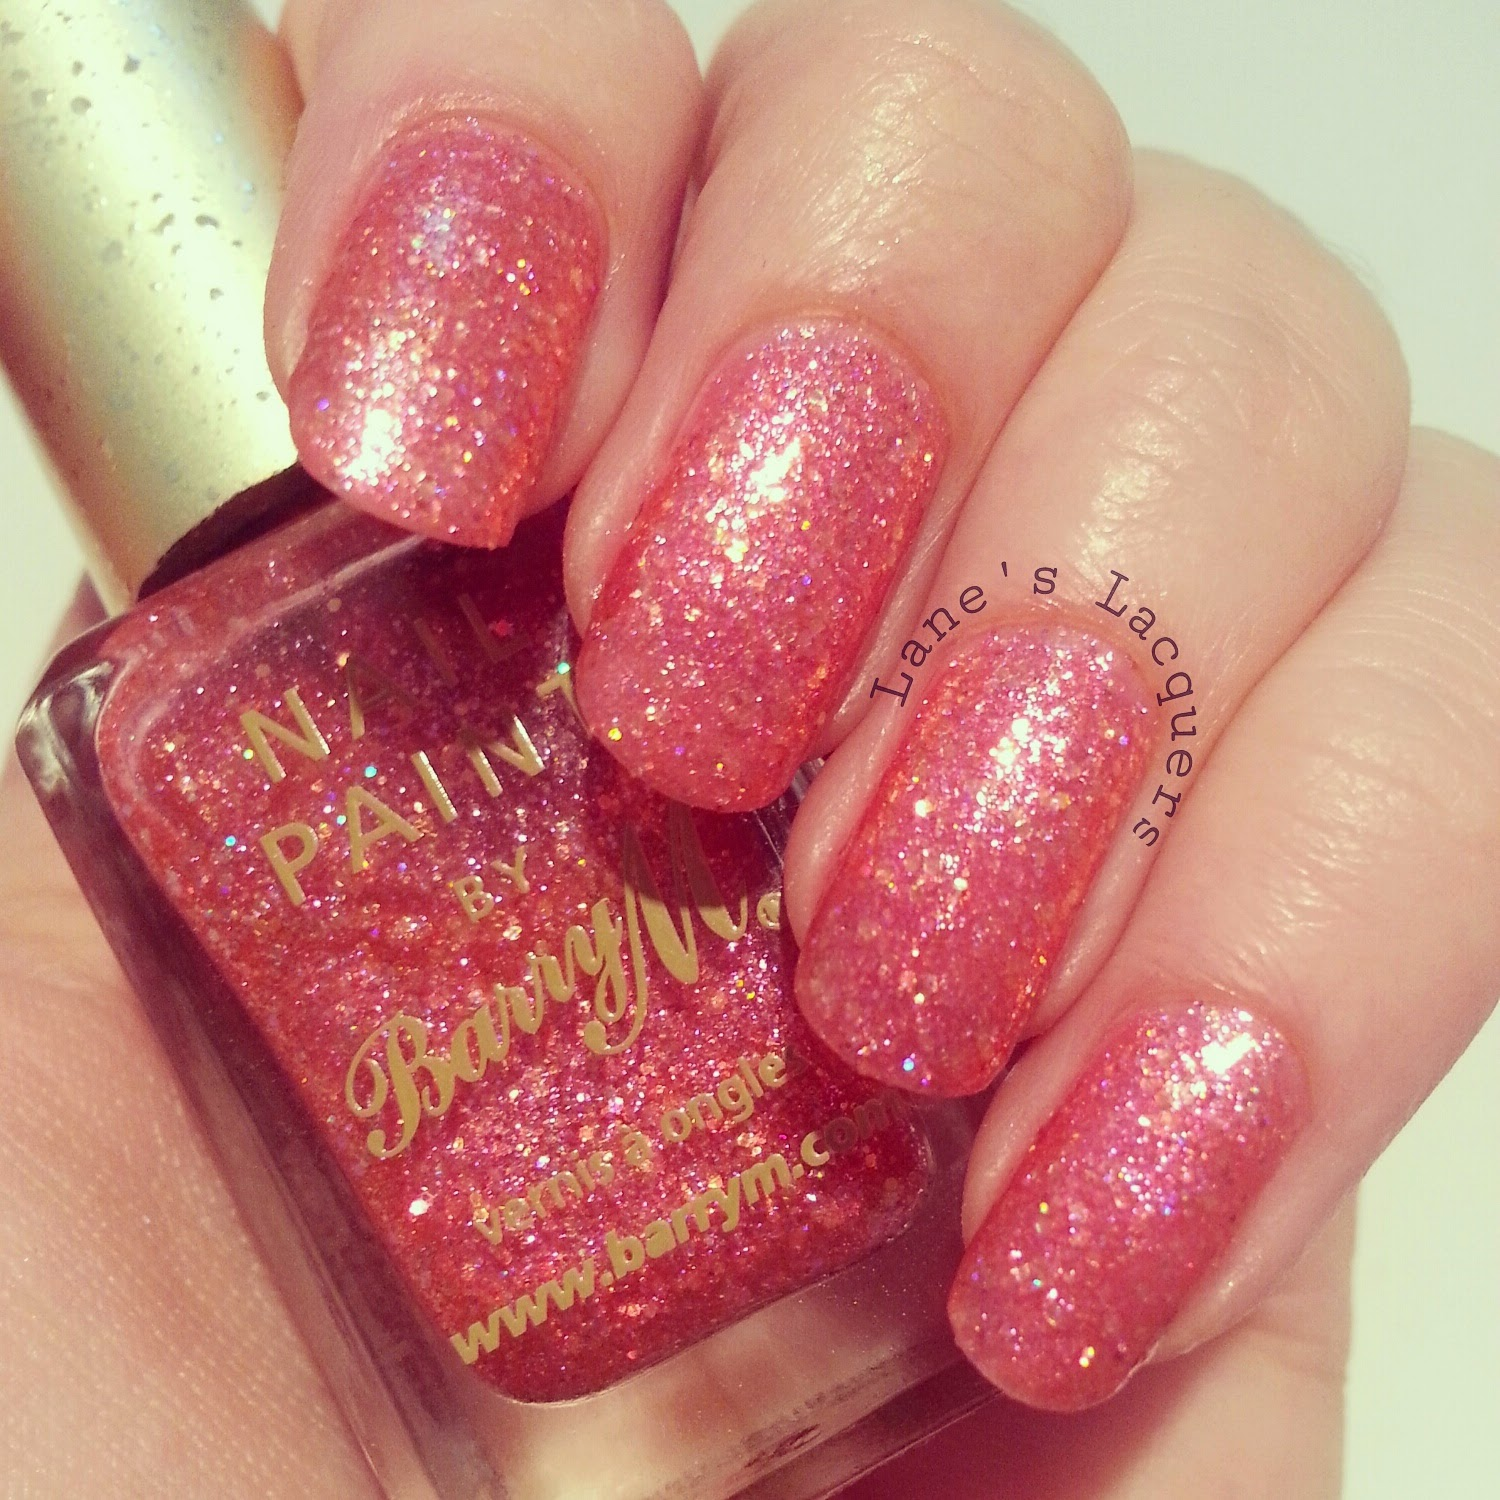 new-barry-m-glitterati-starlet-swatch-manicure (2)